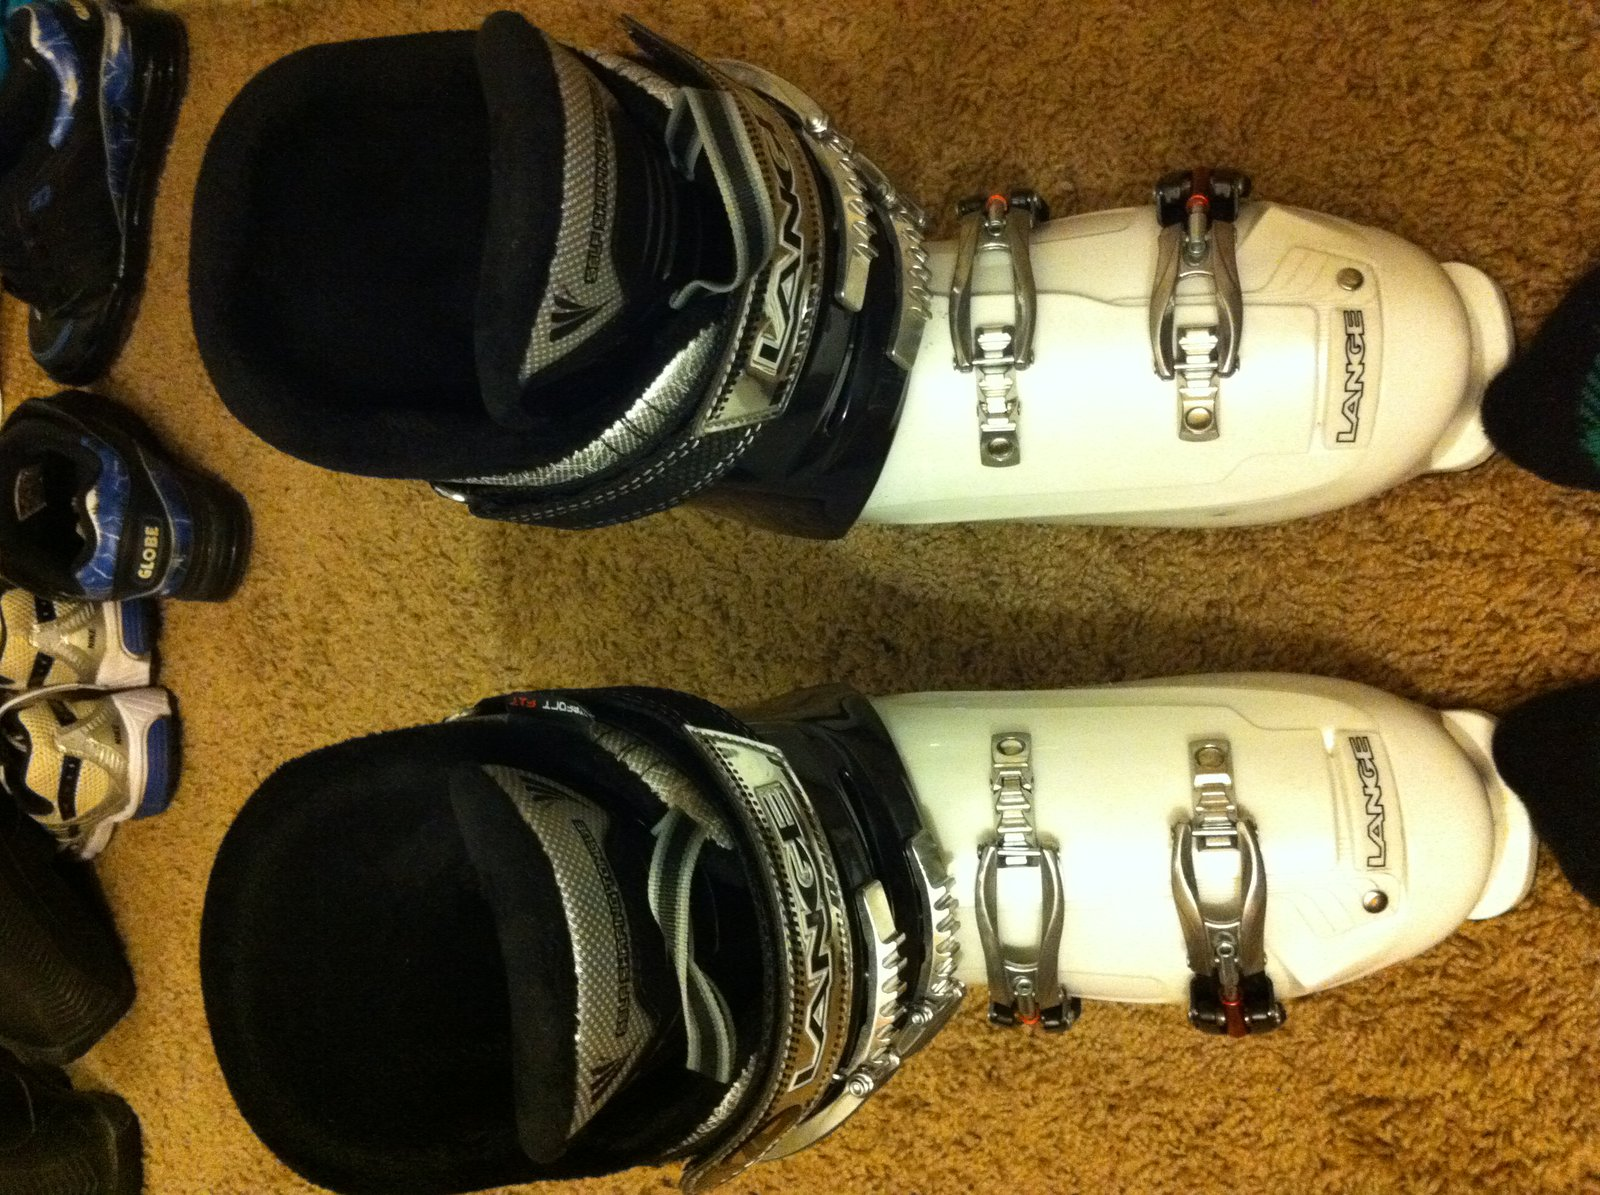 My first ski boots!